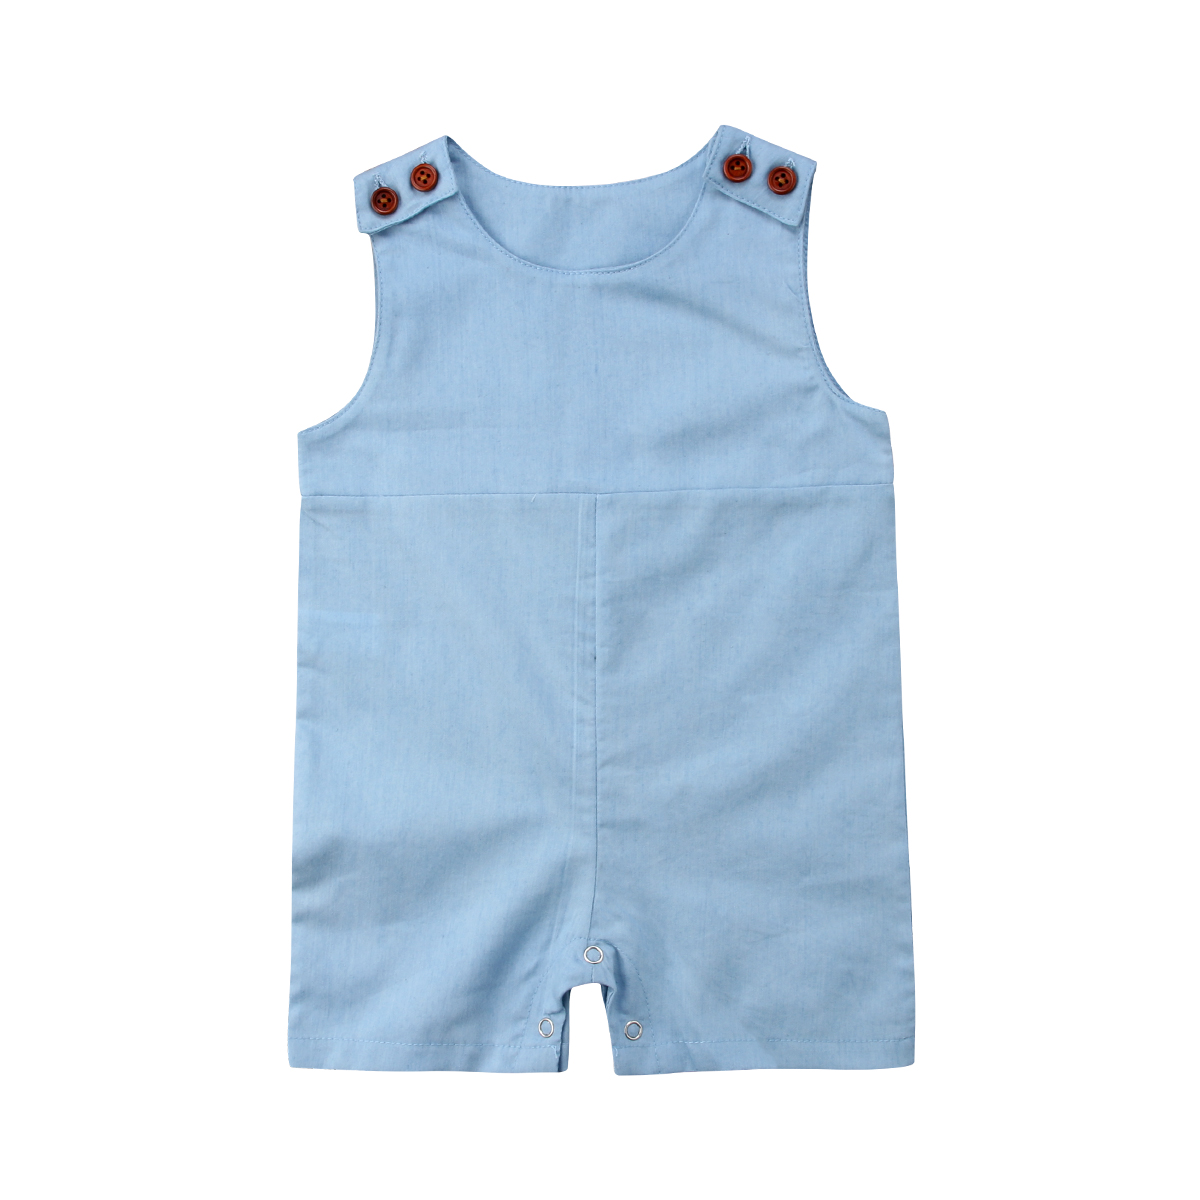 Pudcoco 0-24M Newborn Infant Baby Girls Boy Sleeveless Blue Romper Cotton Playsuit Jumpsuit Rompers Baby Boy Summer Clothes